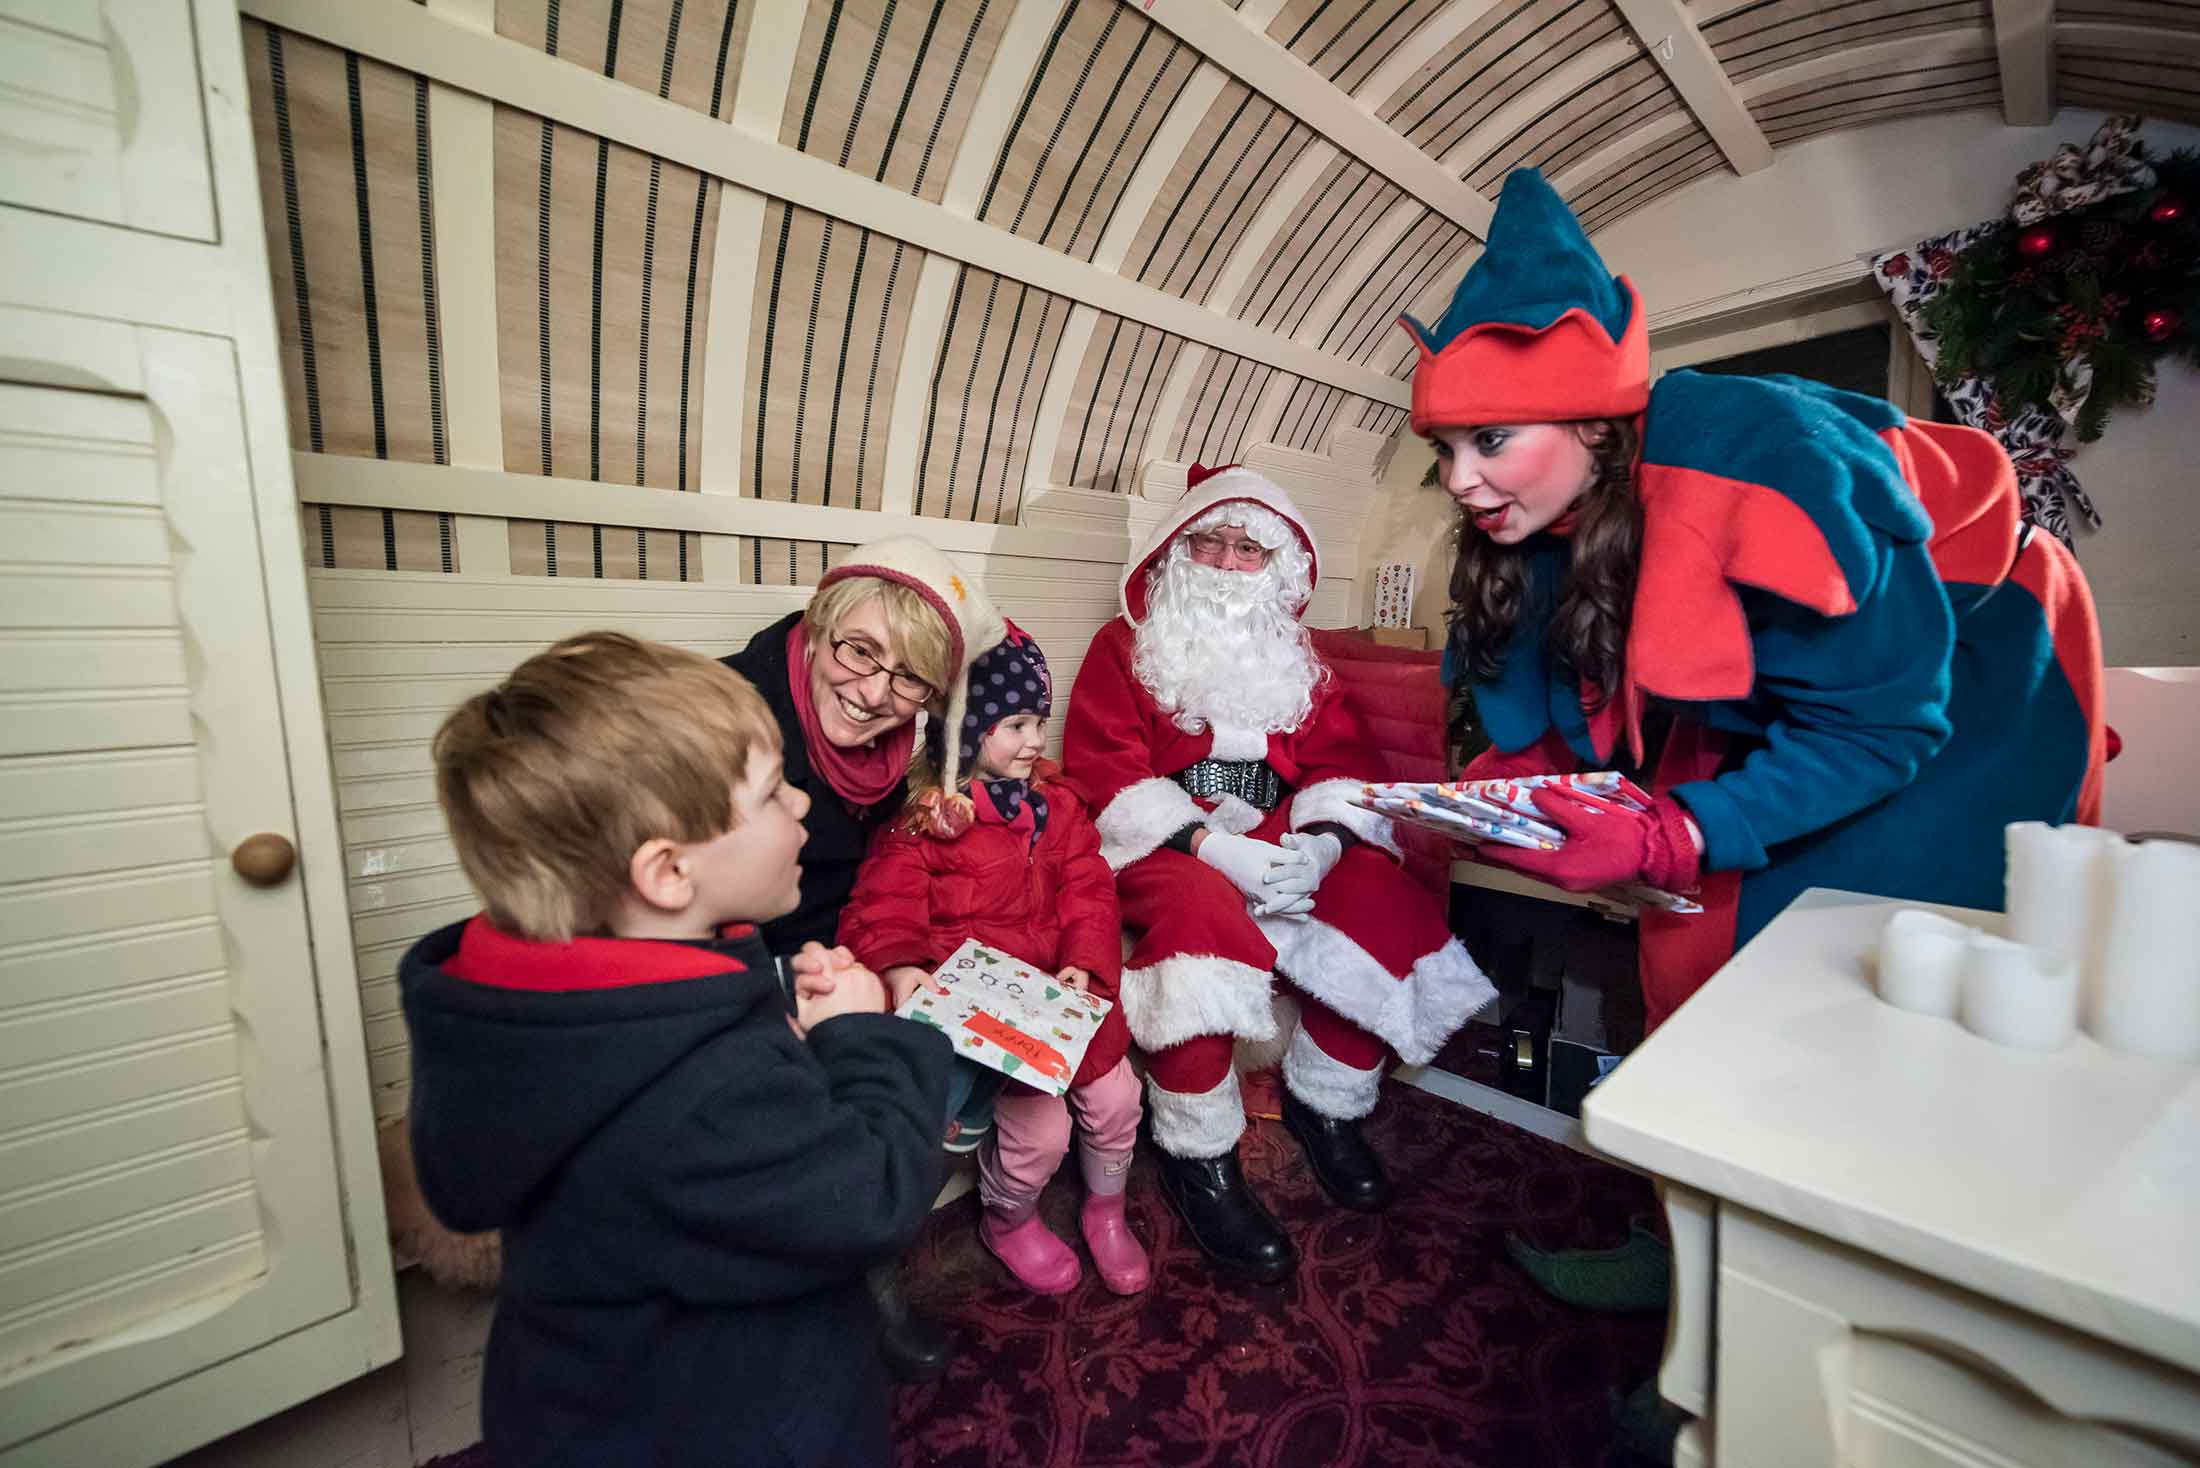 bolton-abbey santa claus christmas